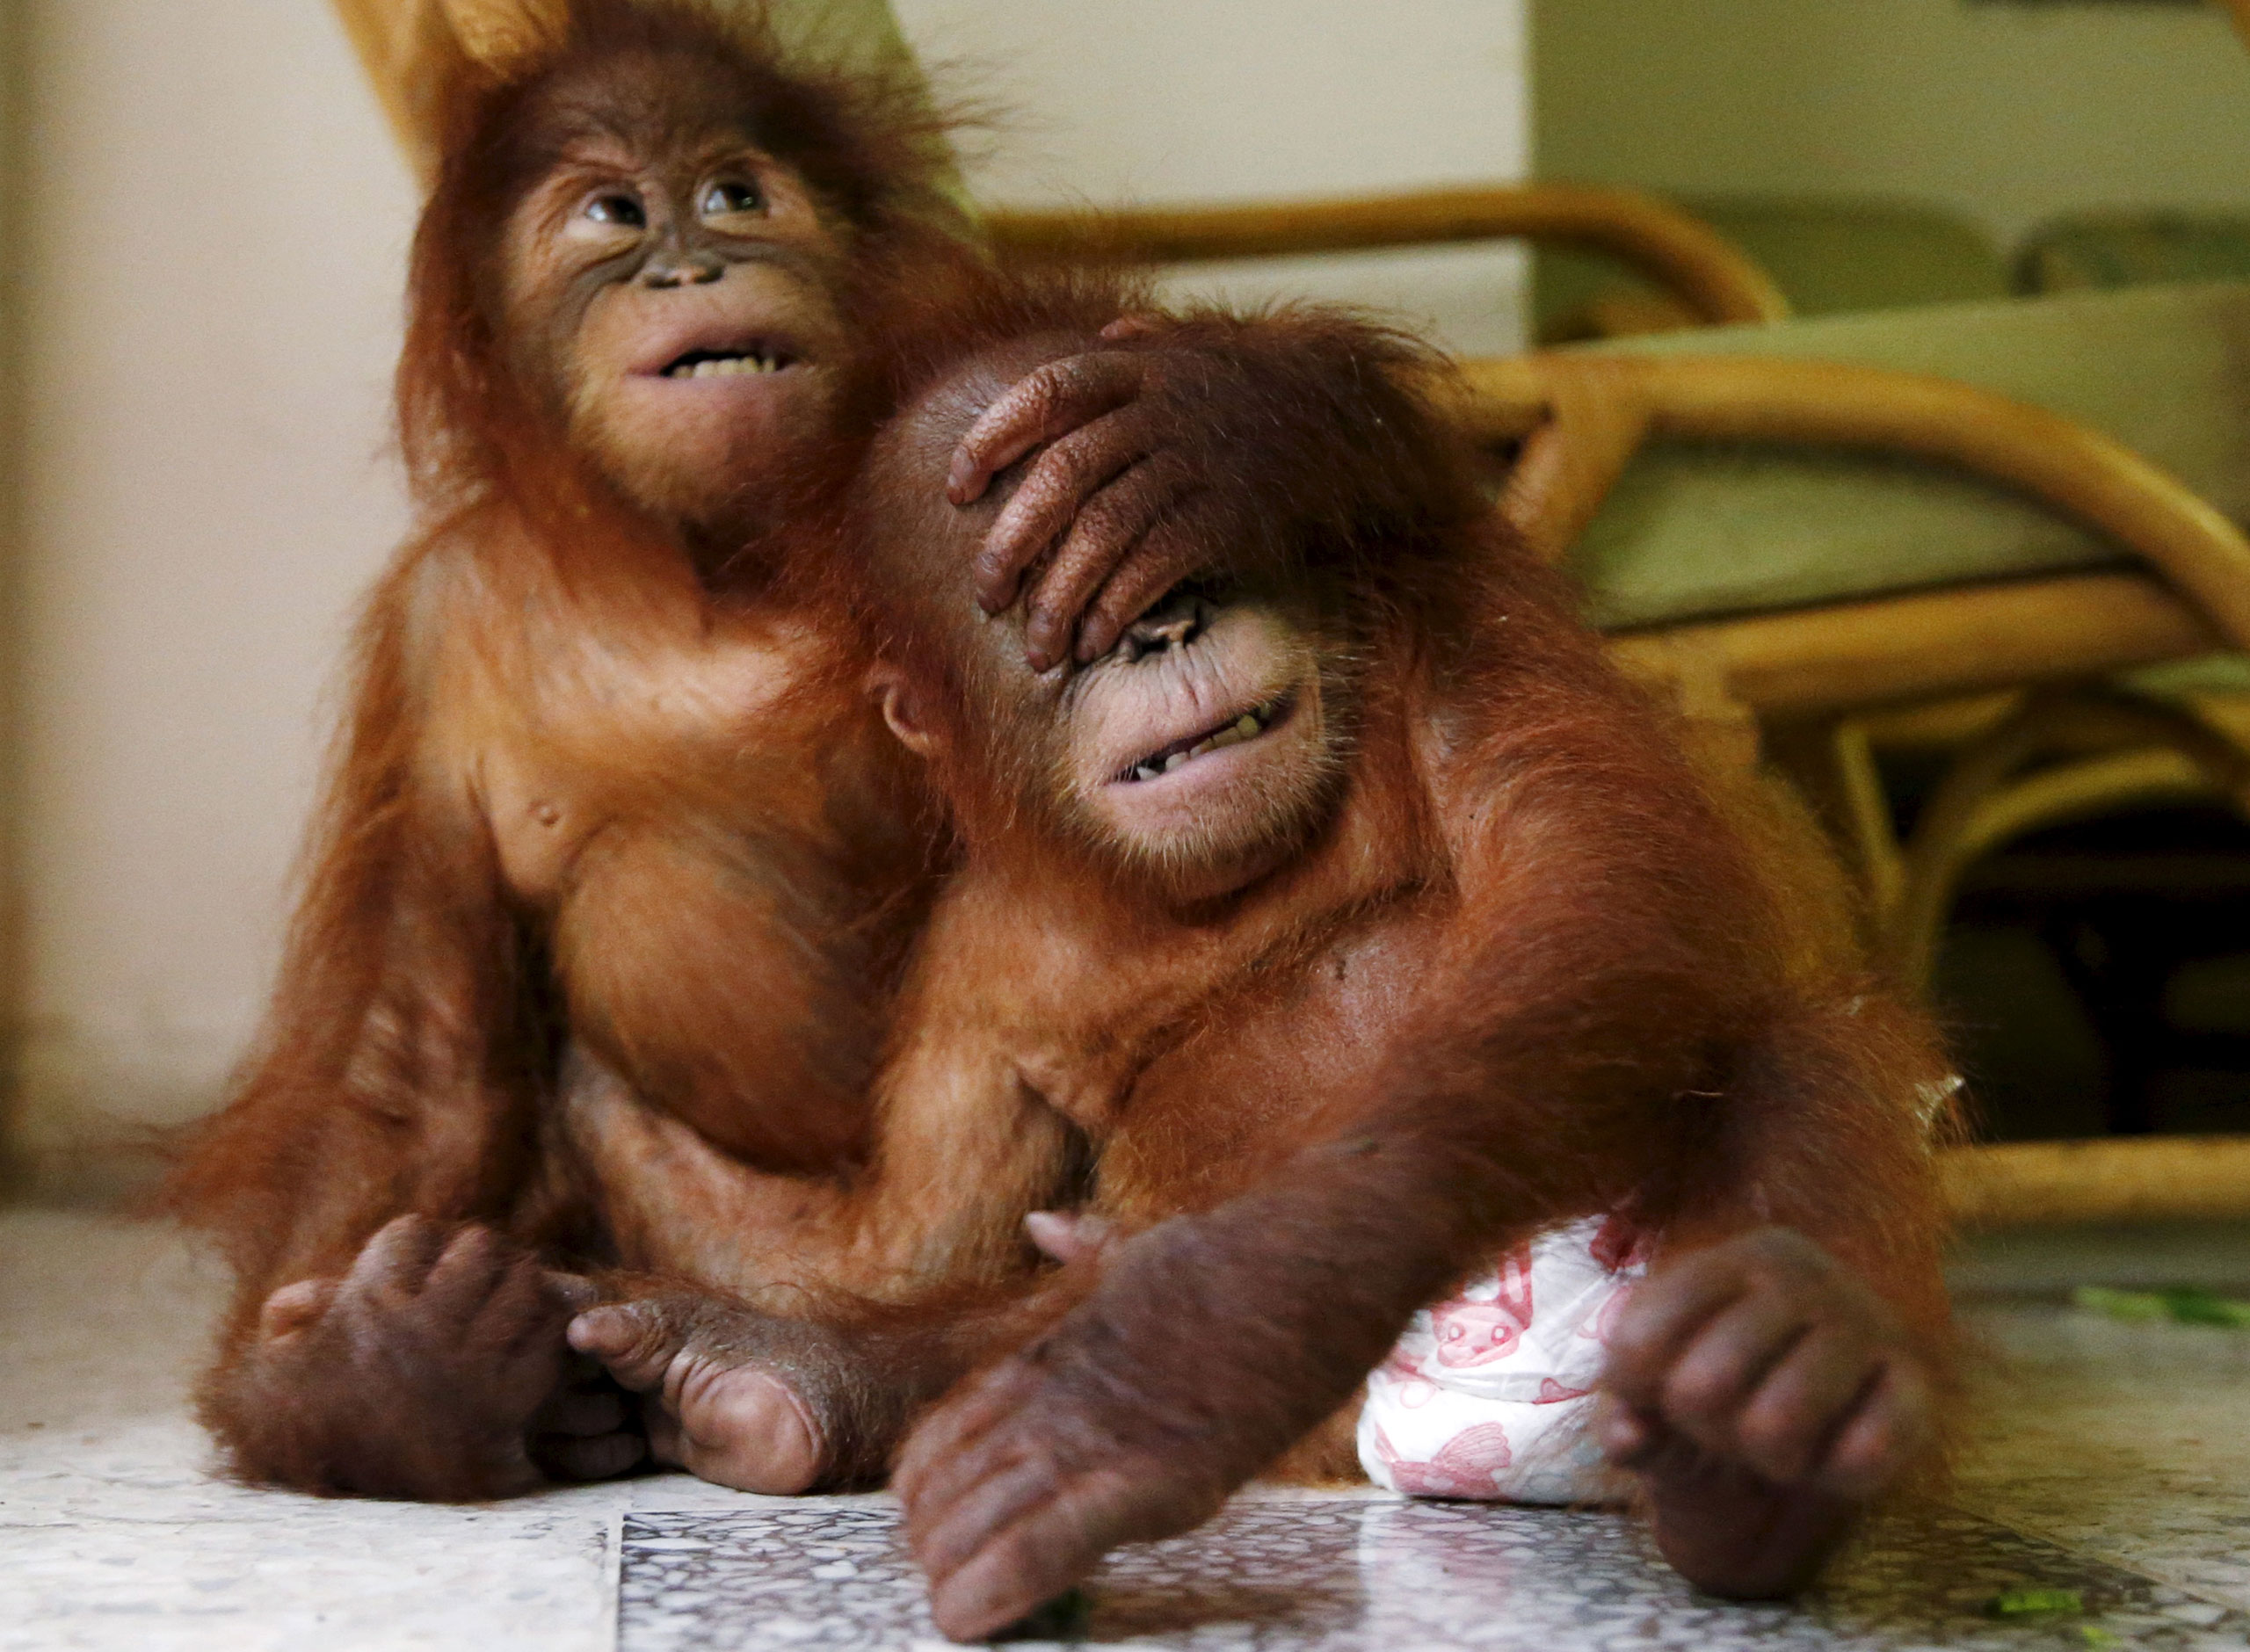 Two baby orangutans play with each other at the wildlife department in Kuala Lumpur, Malayasia, Oct. 19, 2015. The Malaysian wildlife department in July seized two baby Sumatran orangutans, found in duffel bags, from traffickers who were attempting to sell them to buyers in Malaysia.